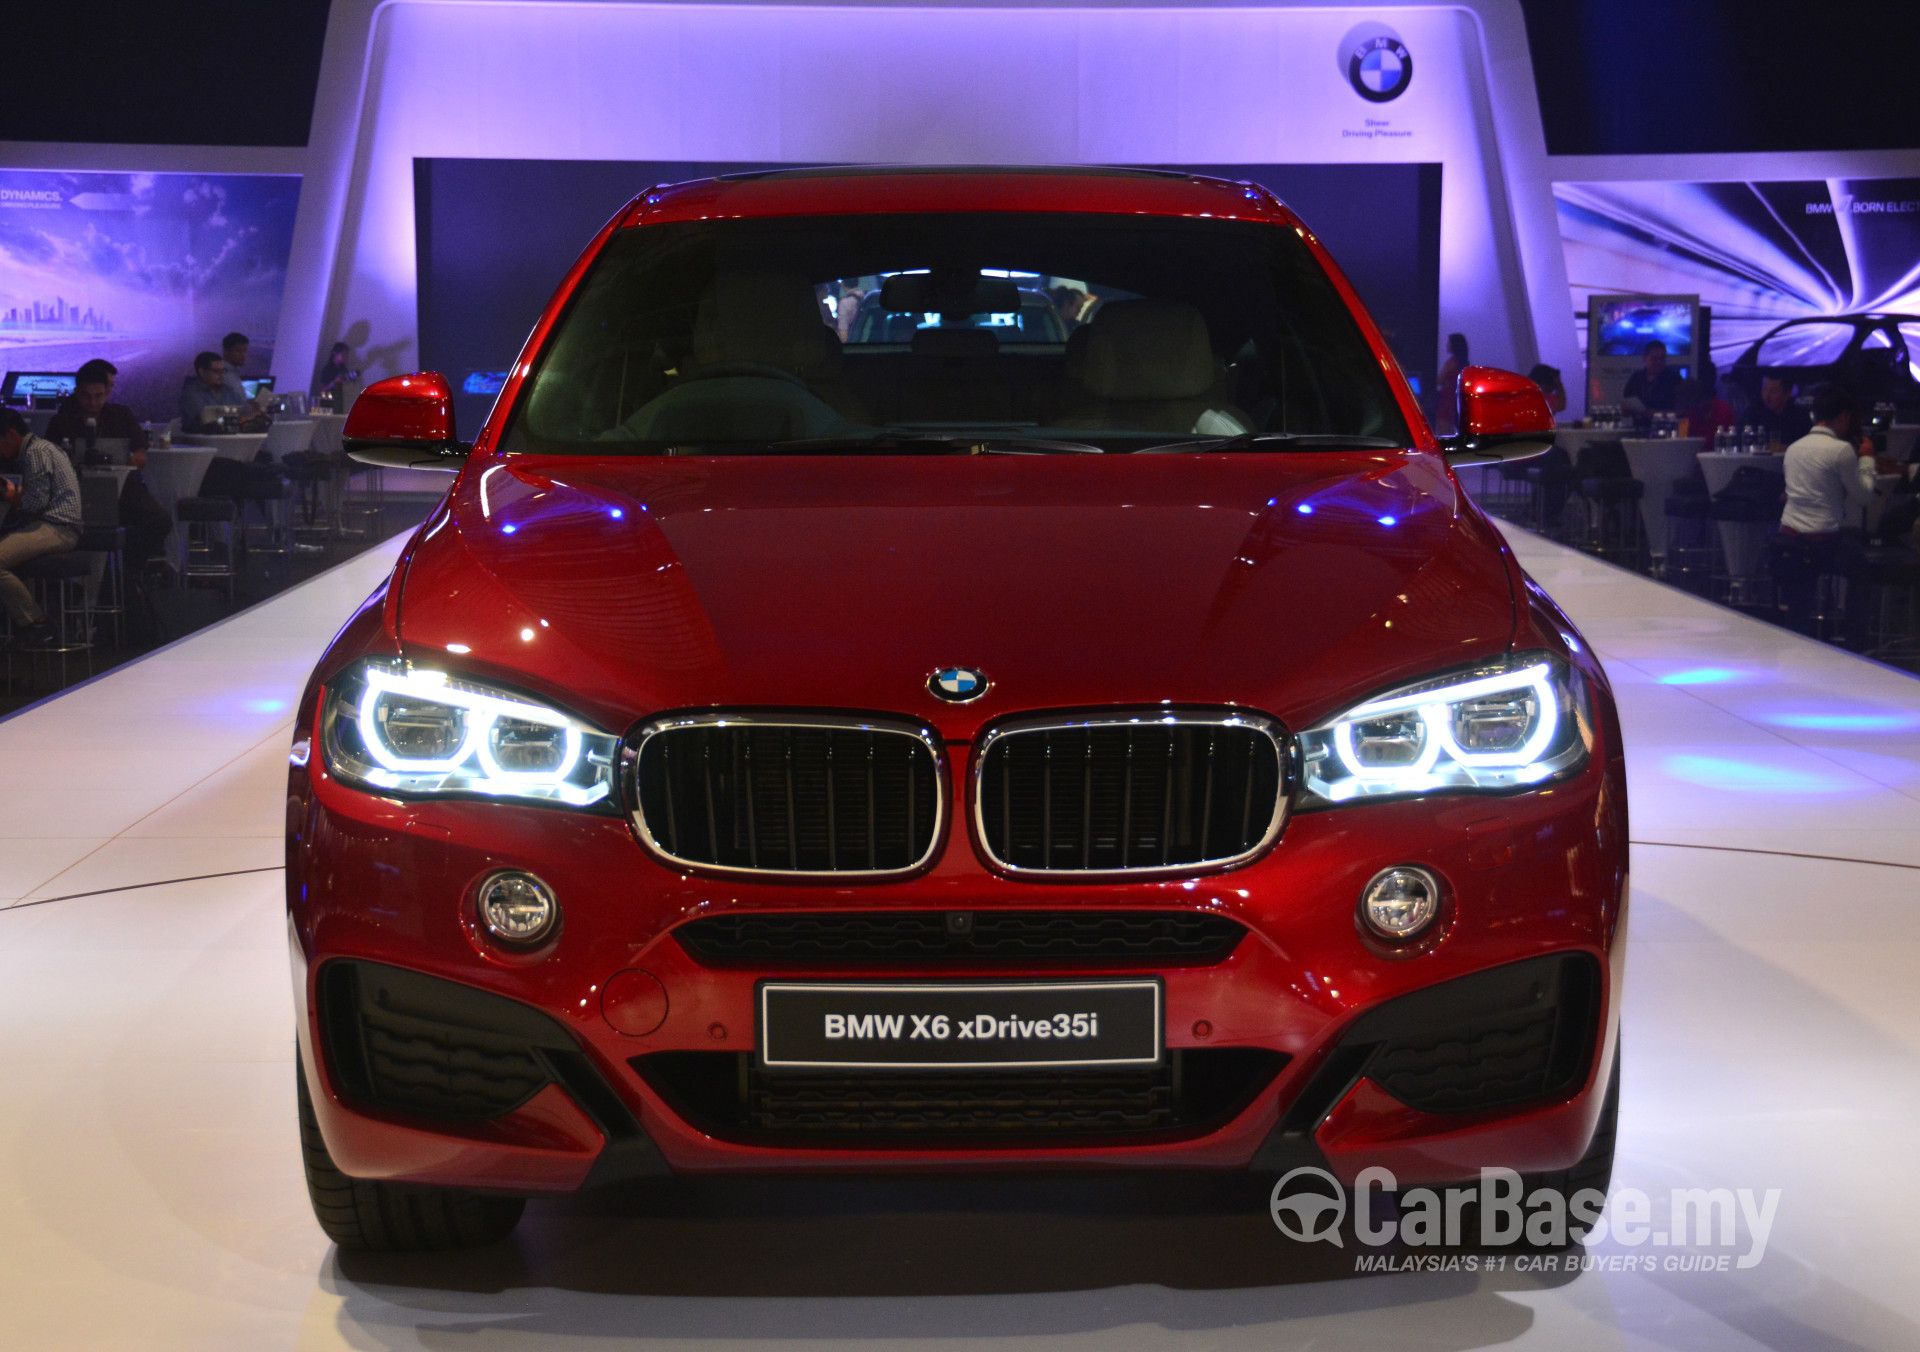 Bmw X6 F16 2015 Exterior Image 20853 In Malaysia